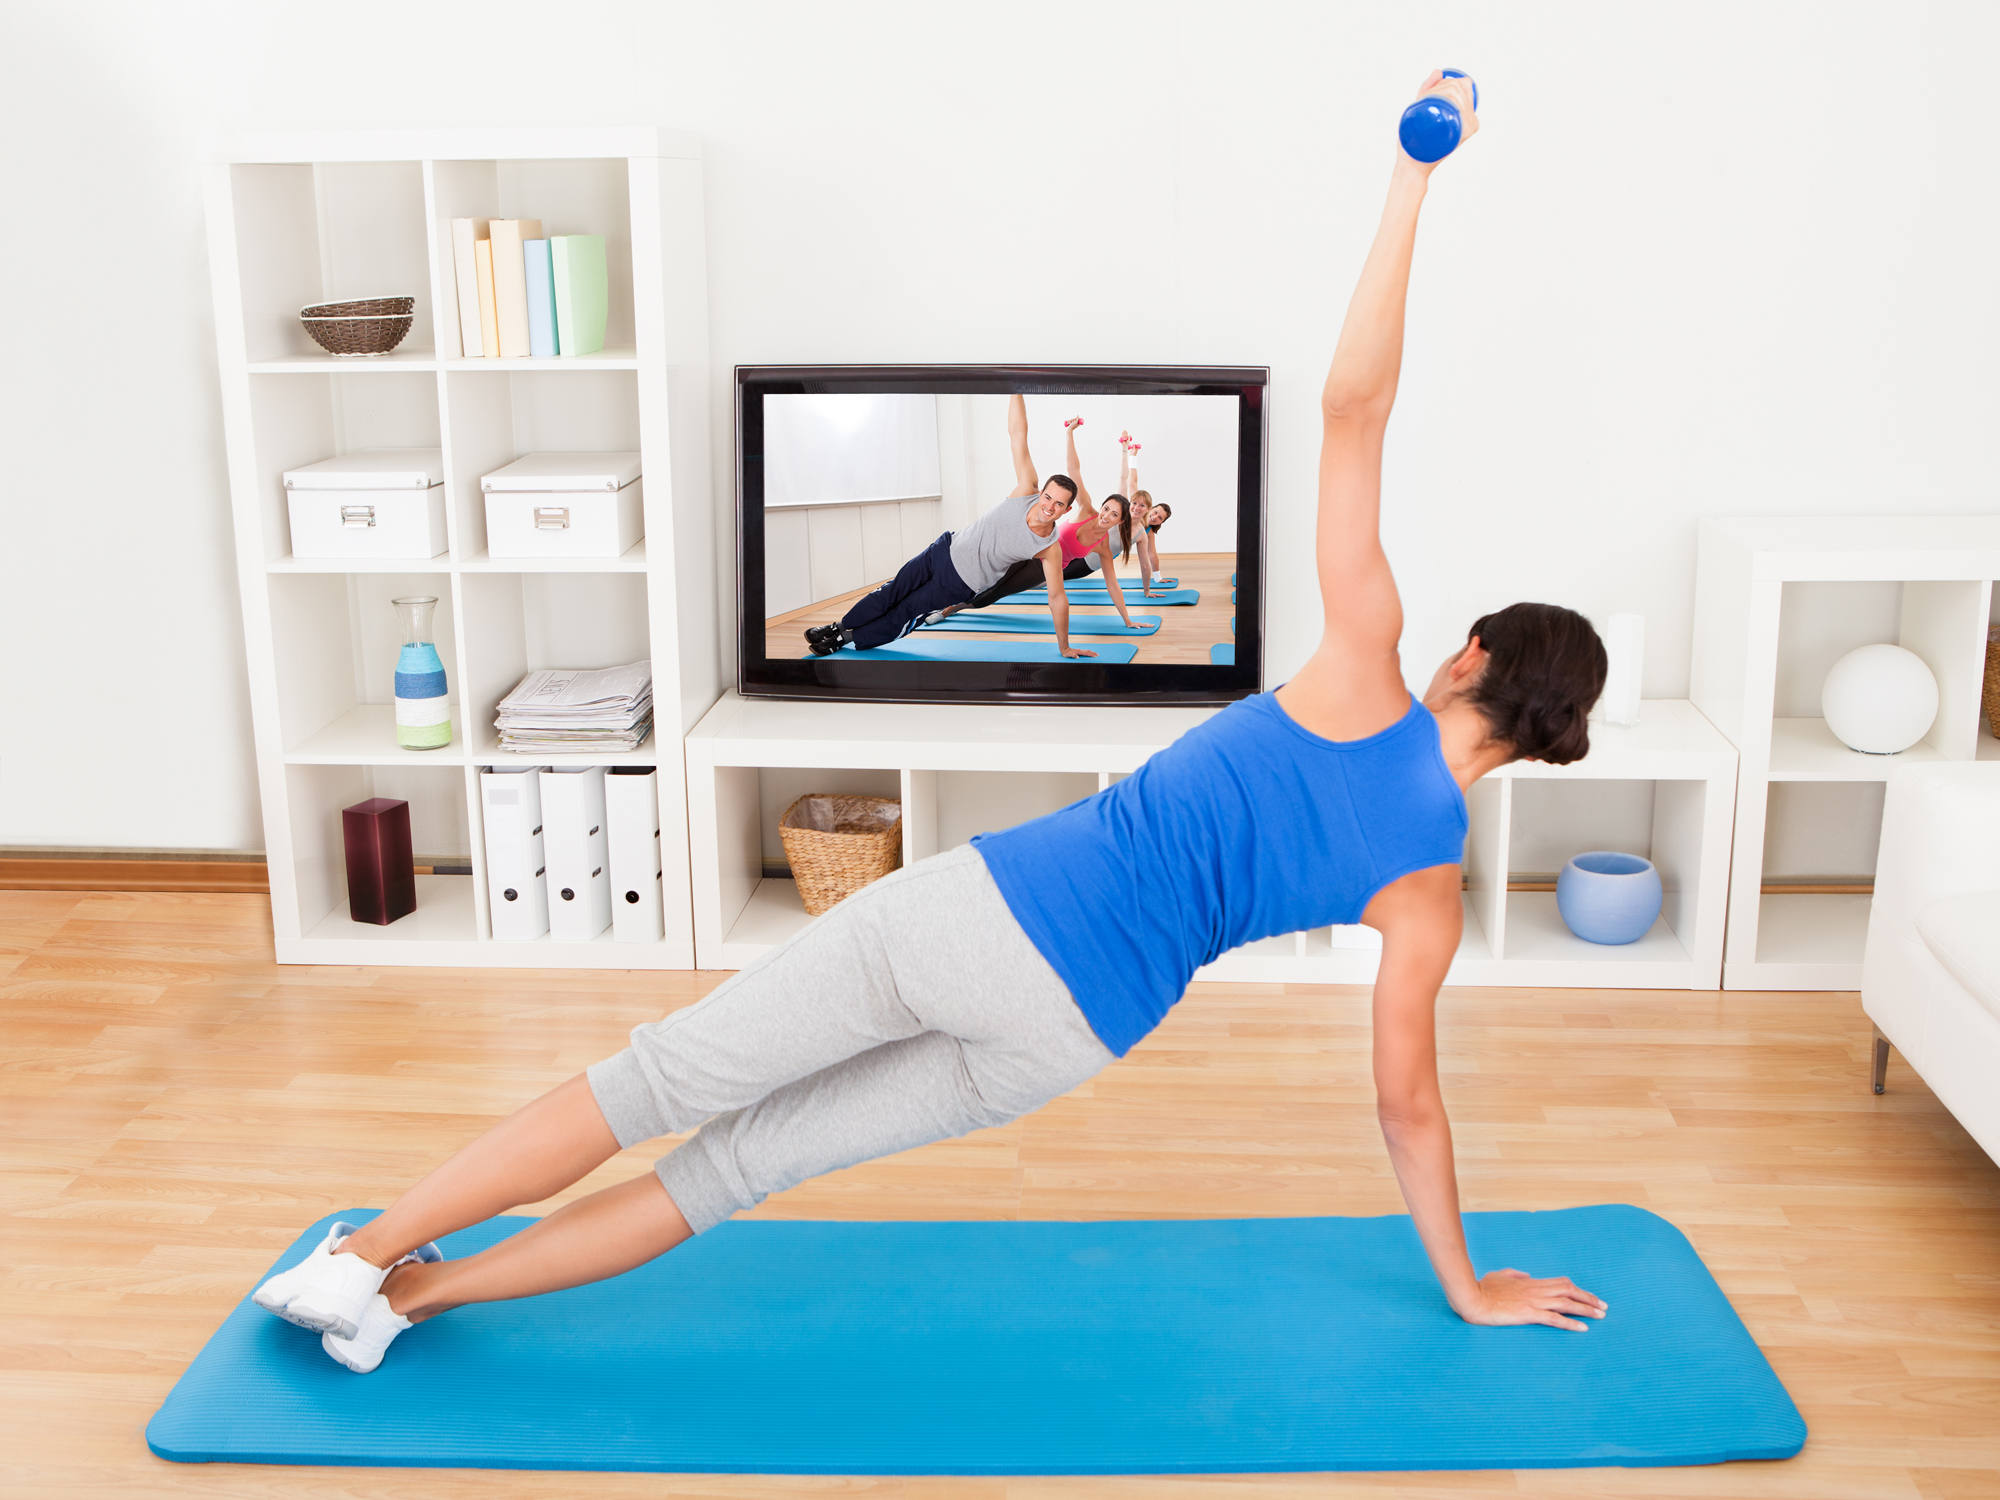 how to set up a home gym on a budget easy health options. Black Bedroom Furniture Sets. Home Design Ideas